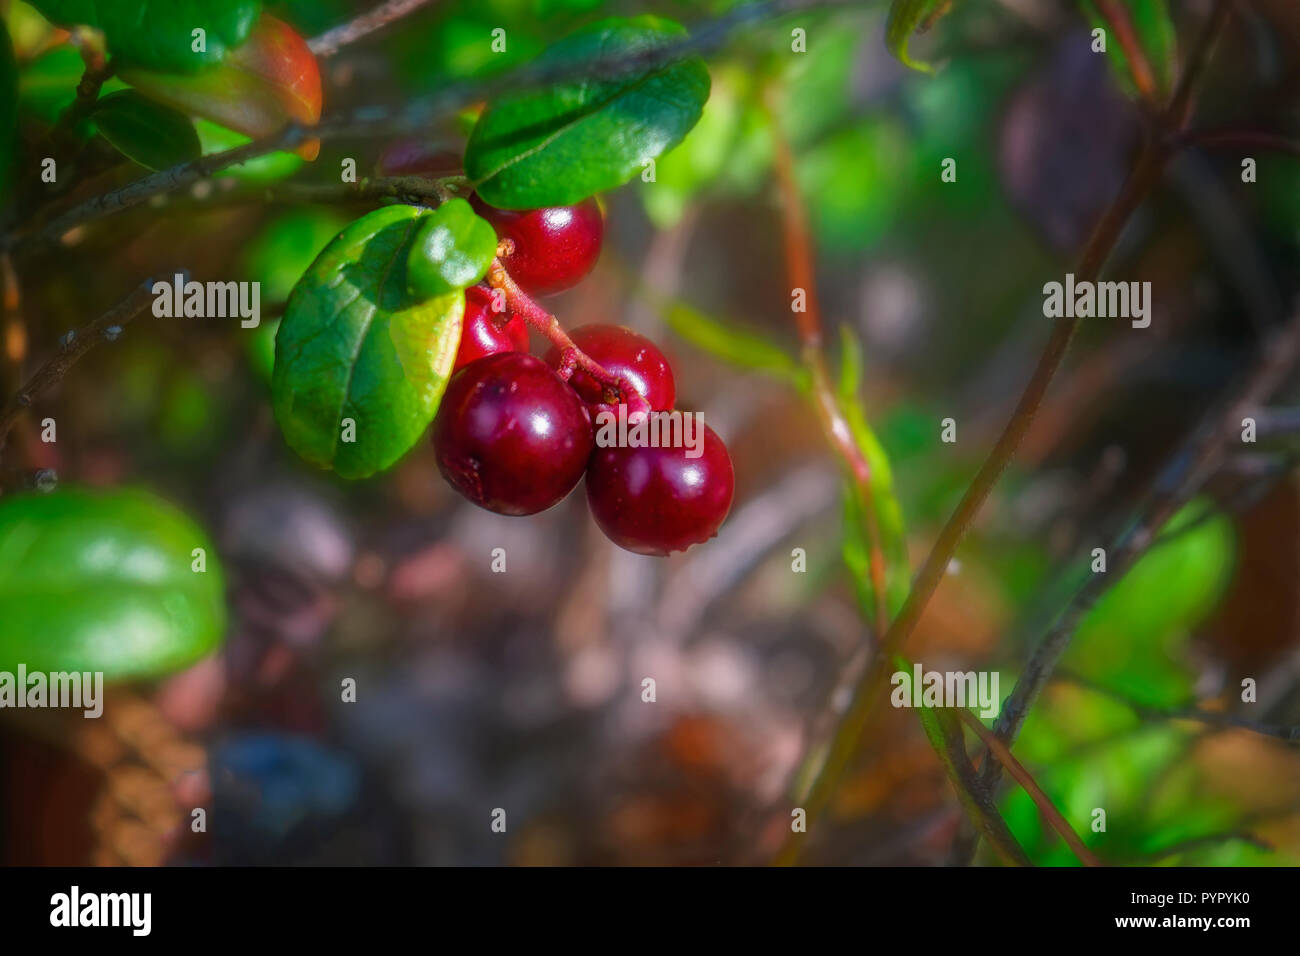 Ripe lingonberries close-up in the forest in late summer natural background - Stock Image